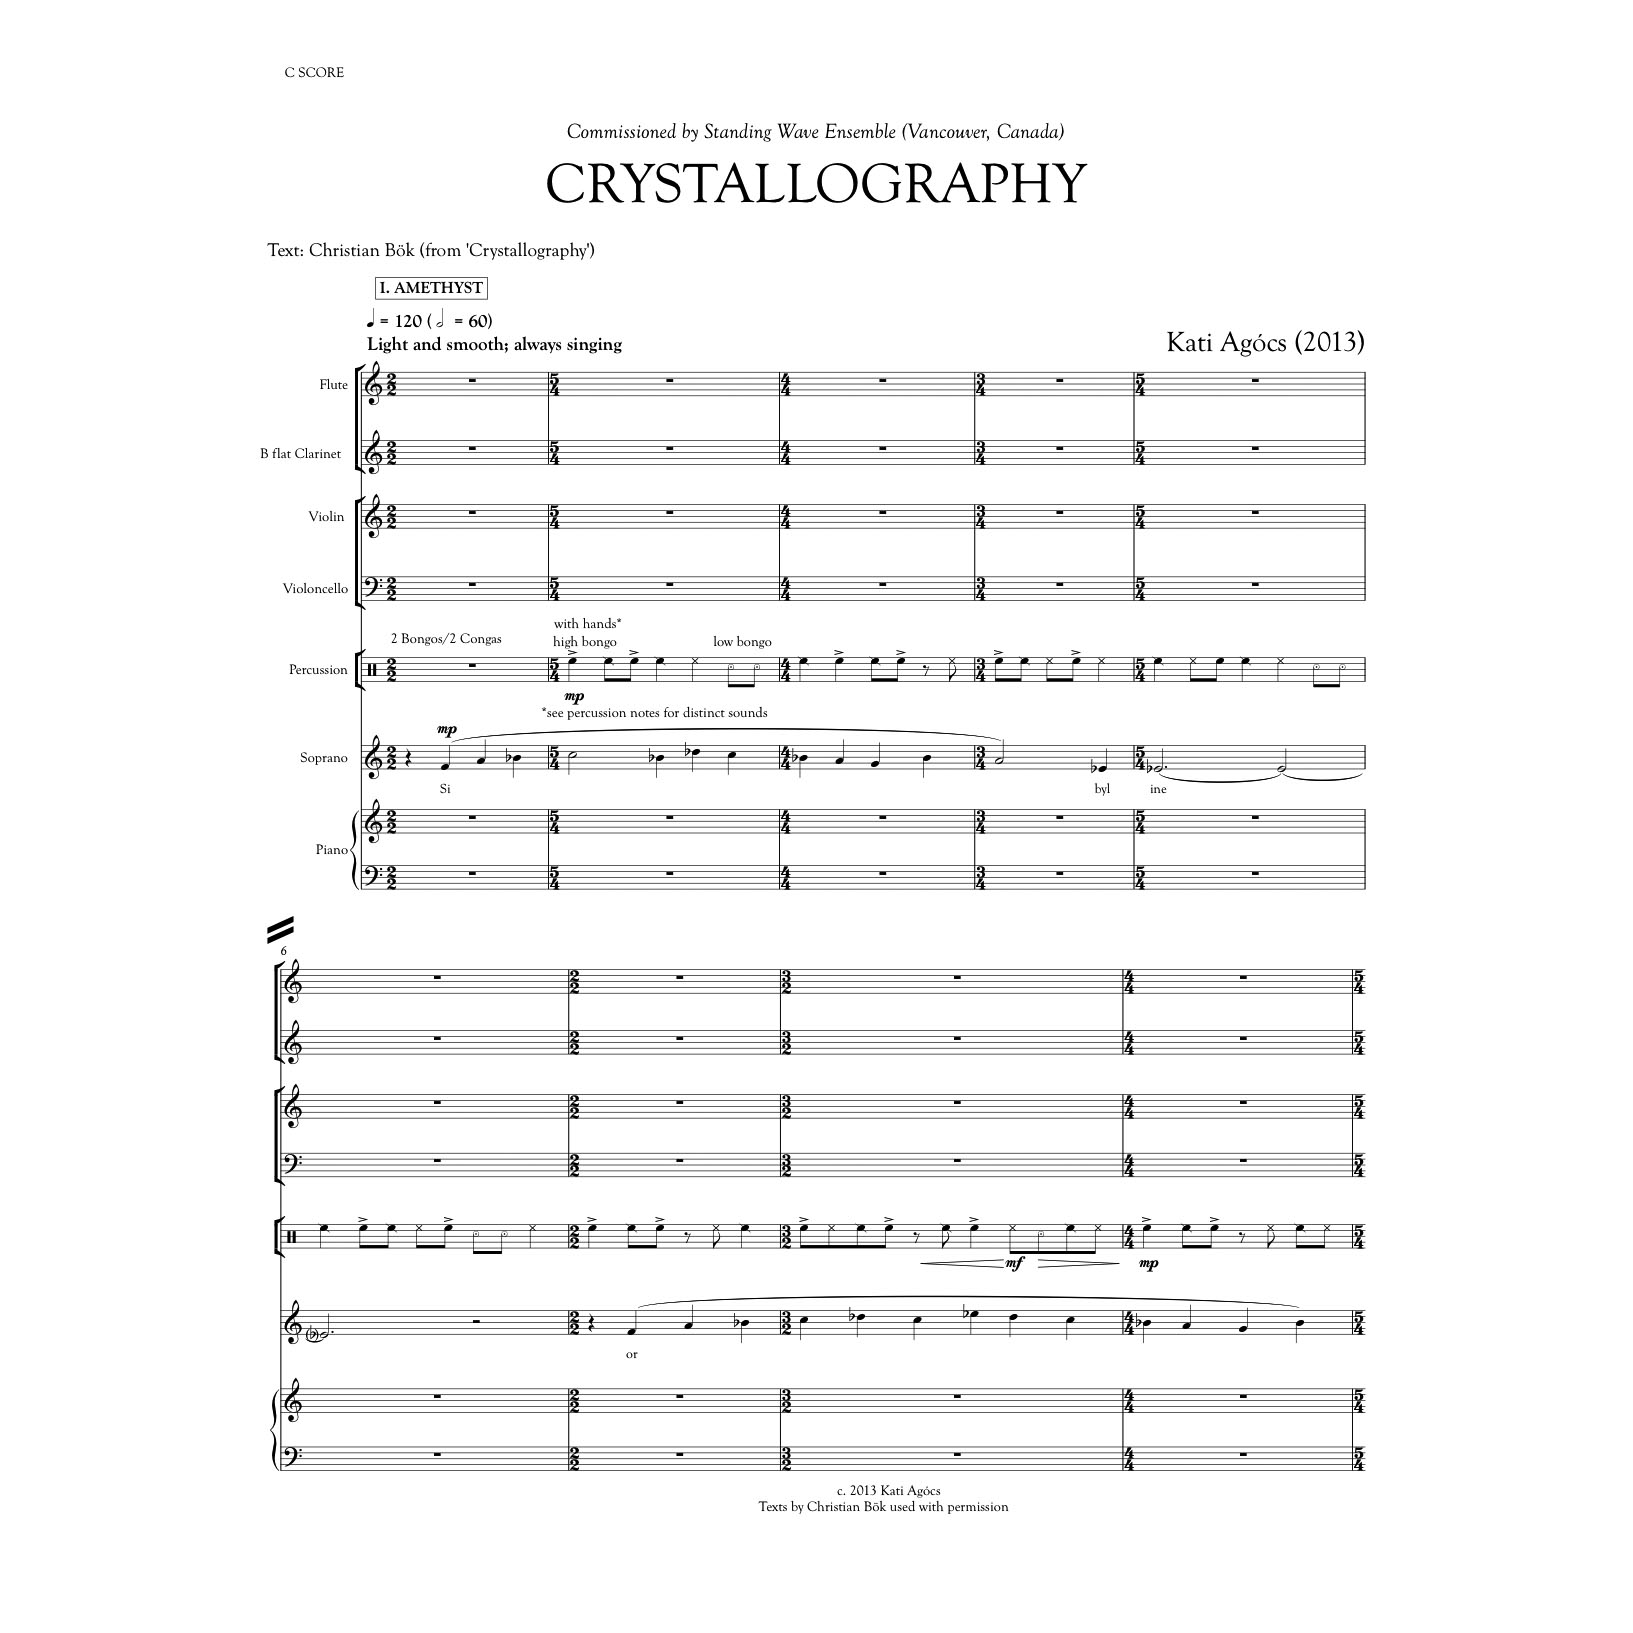 CRYSTALLOGRAPHY — KATI AGÓCS   OFFICIAL WEBSITE   CONTEMPORARY MUSIC  COMPOSER   CLASSICAL MUSIC EDUCATOR   SHEET MUSIC ONLINE